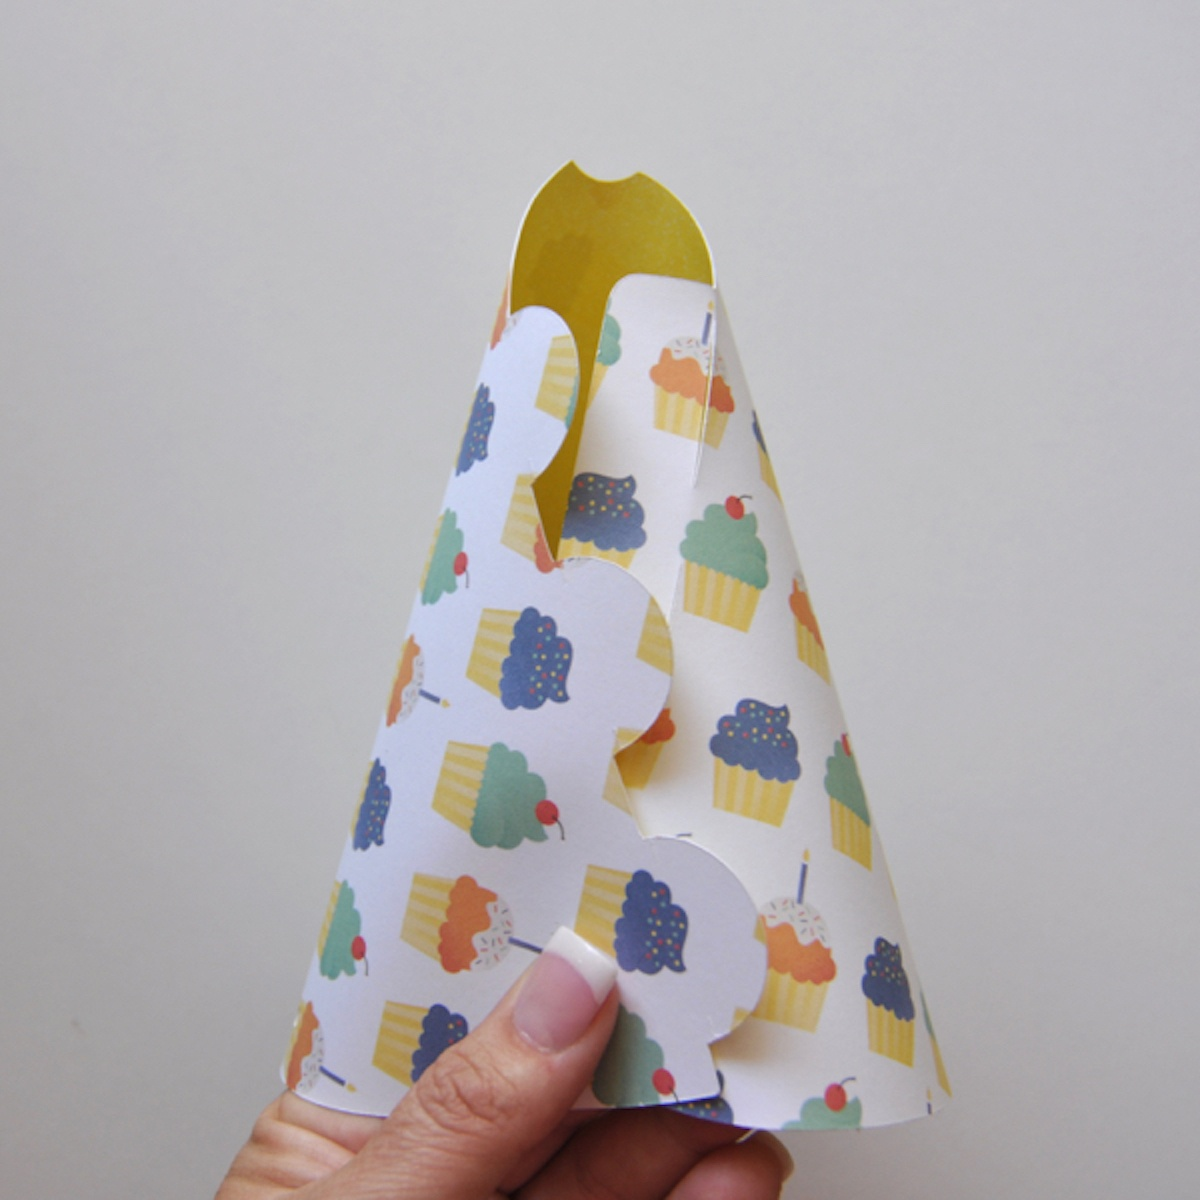 Party Hats {Free Printable Template}   We R Memory Keepers Blog - Free Printable Party Hat